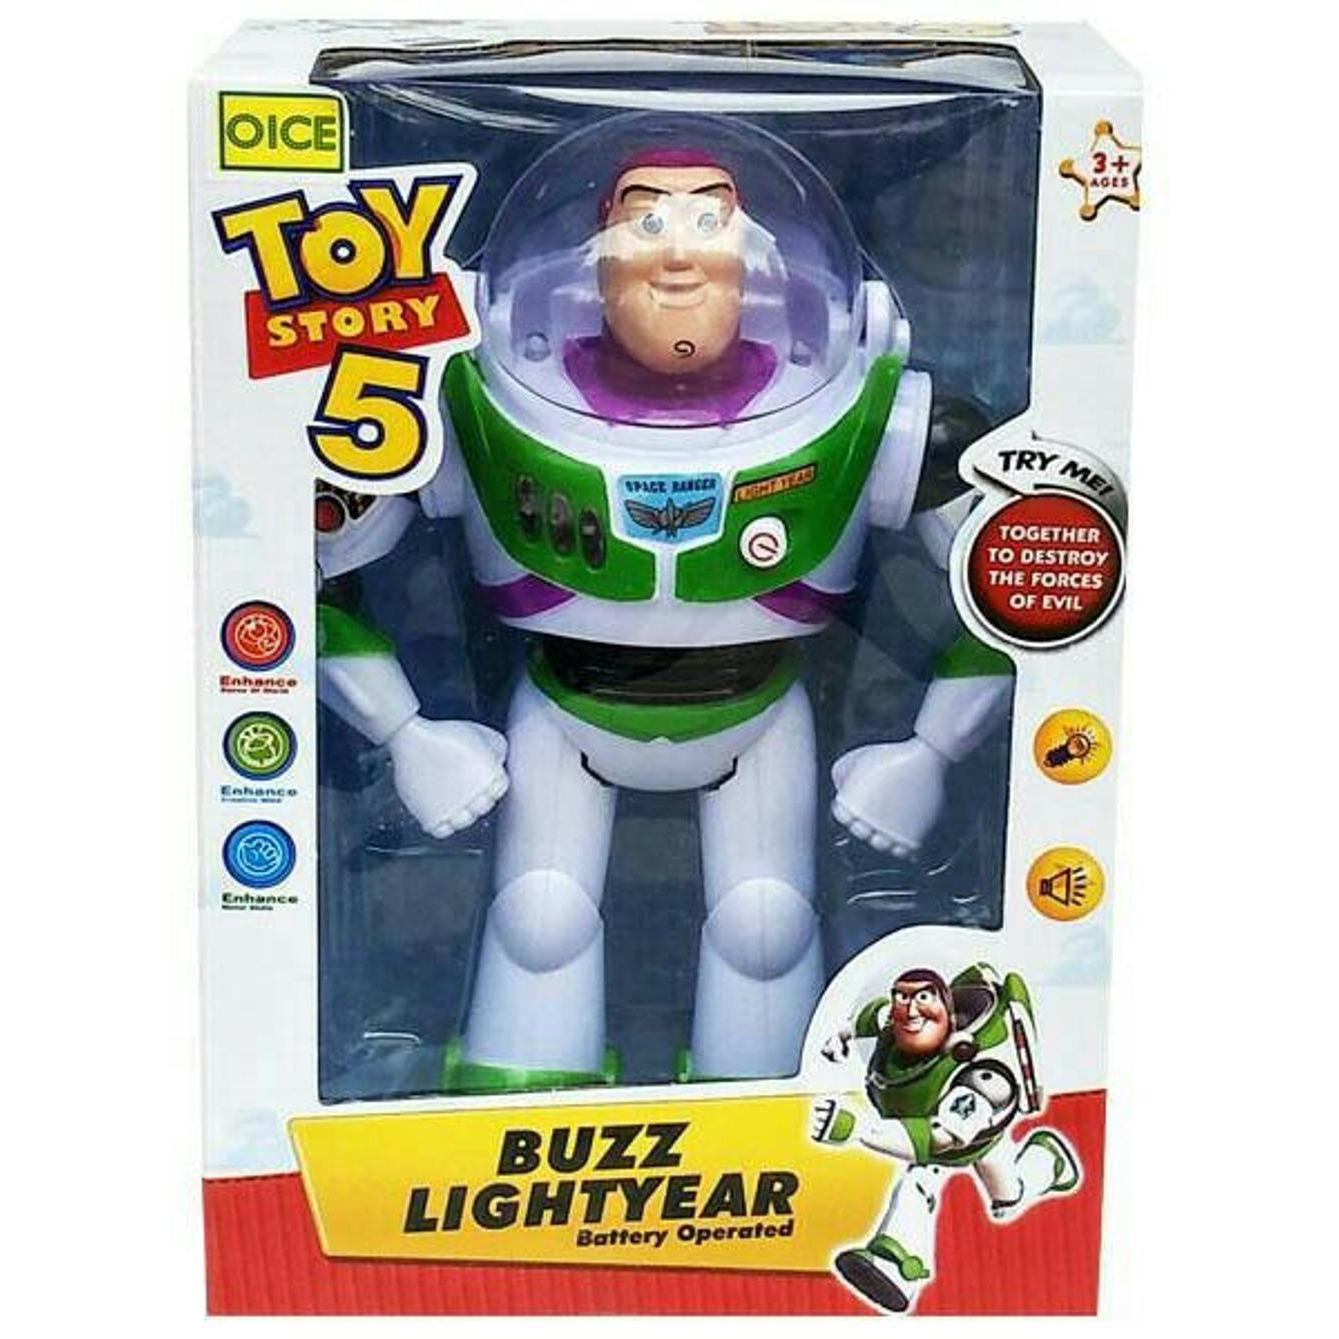 [PROMO] Mainan Anak Buzz Lightyear Light Year Toy Story 5 Toys Robot